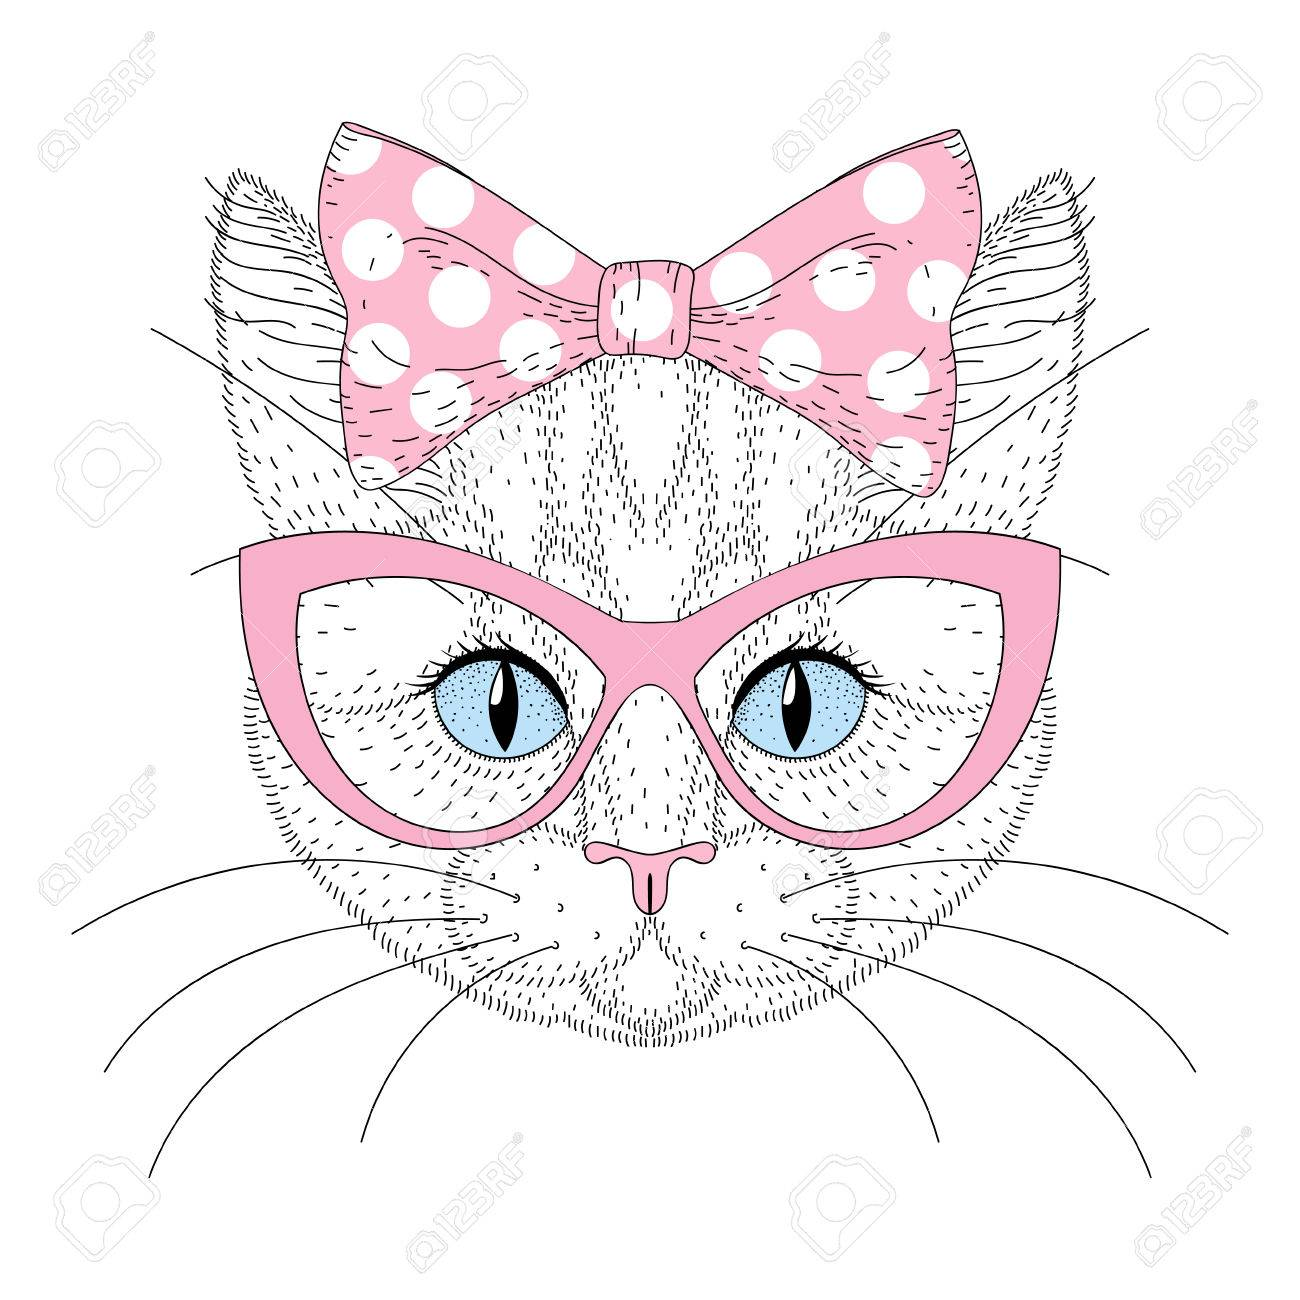 1300x1300 Cute Cat Portrait With Pin Up Bow Tie On Head, Sunglasses. Hand